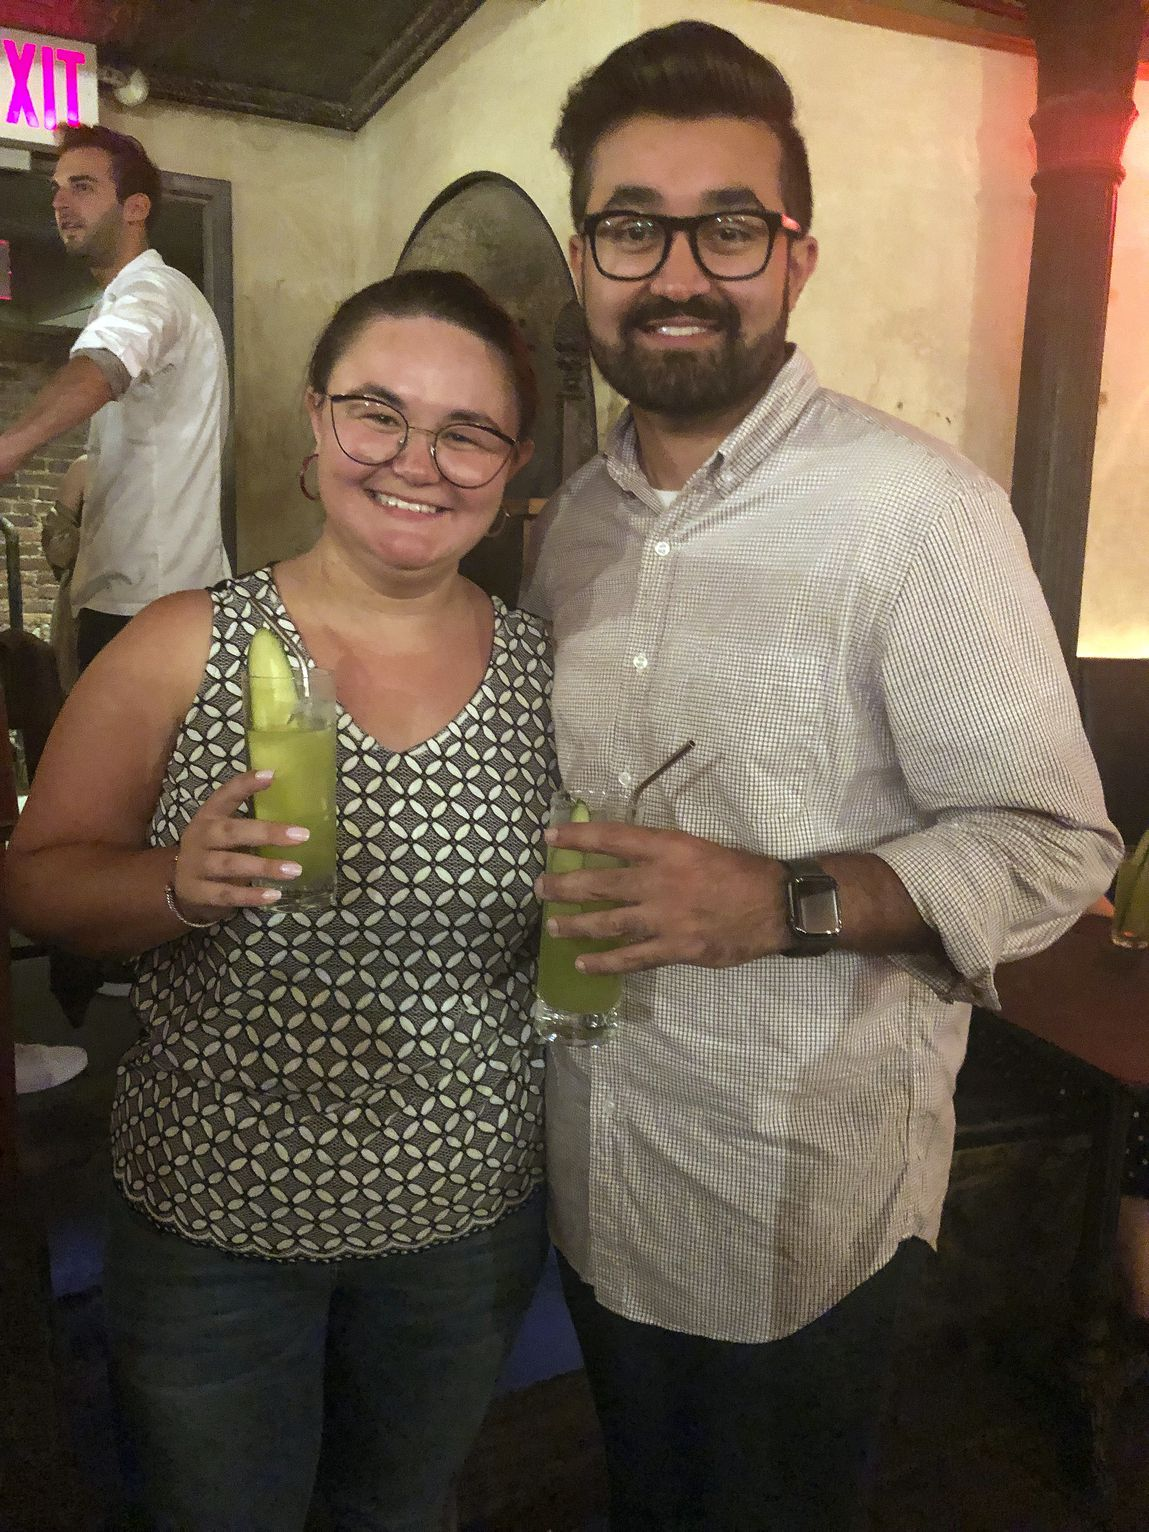 Cat Tjan, 27, of Jersey City, N.J., left, and Ammar Farooqi, 26, from Williamstown, N.J. posing their mocktail dubbed Me, A Houseplant, a green concoction comprised of Seedlip's Garden 108 variety (the one with the peas), cucumber, lemon and elderflower a